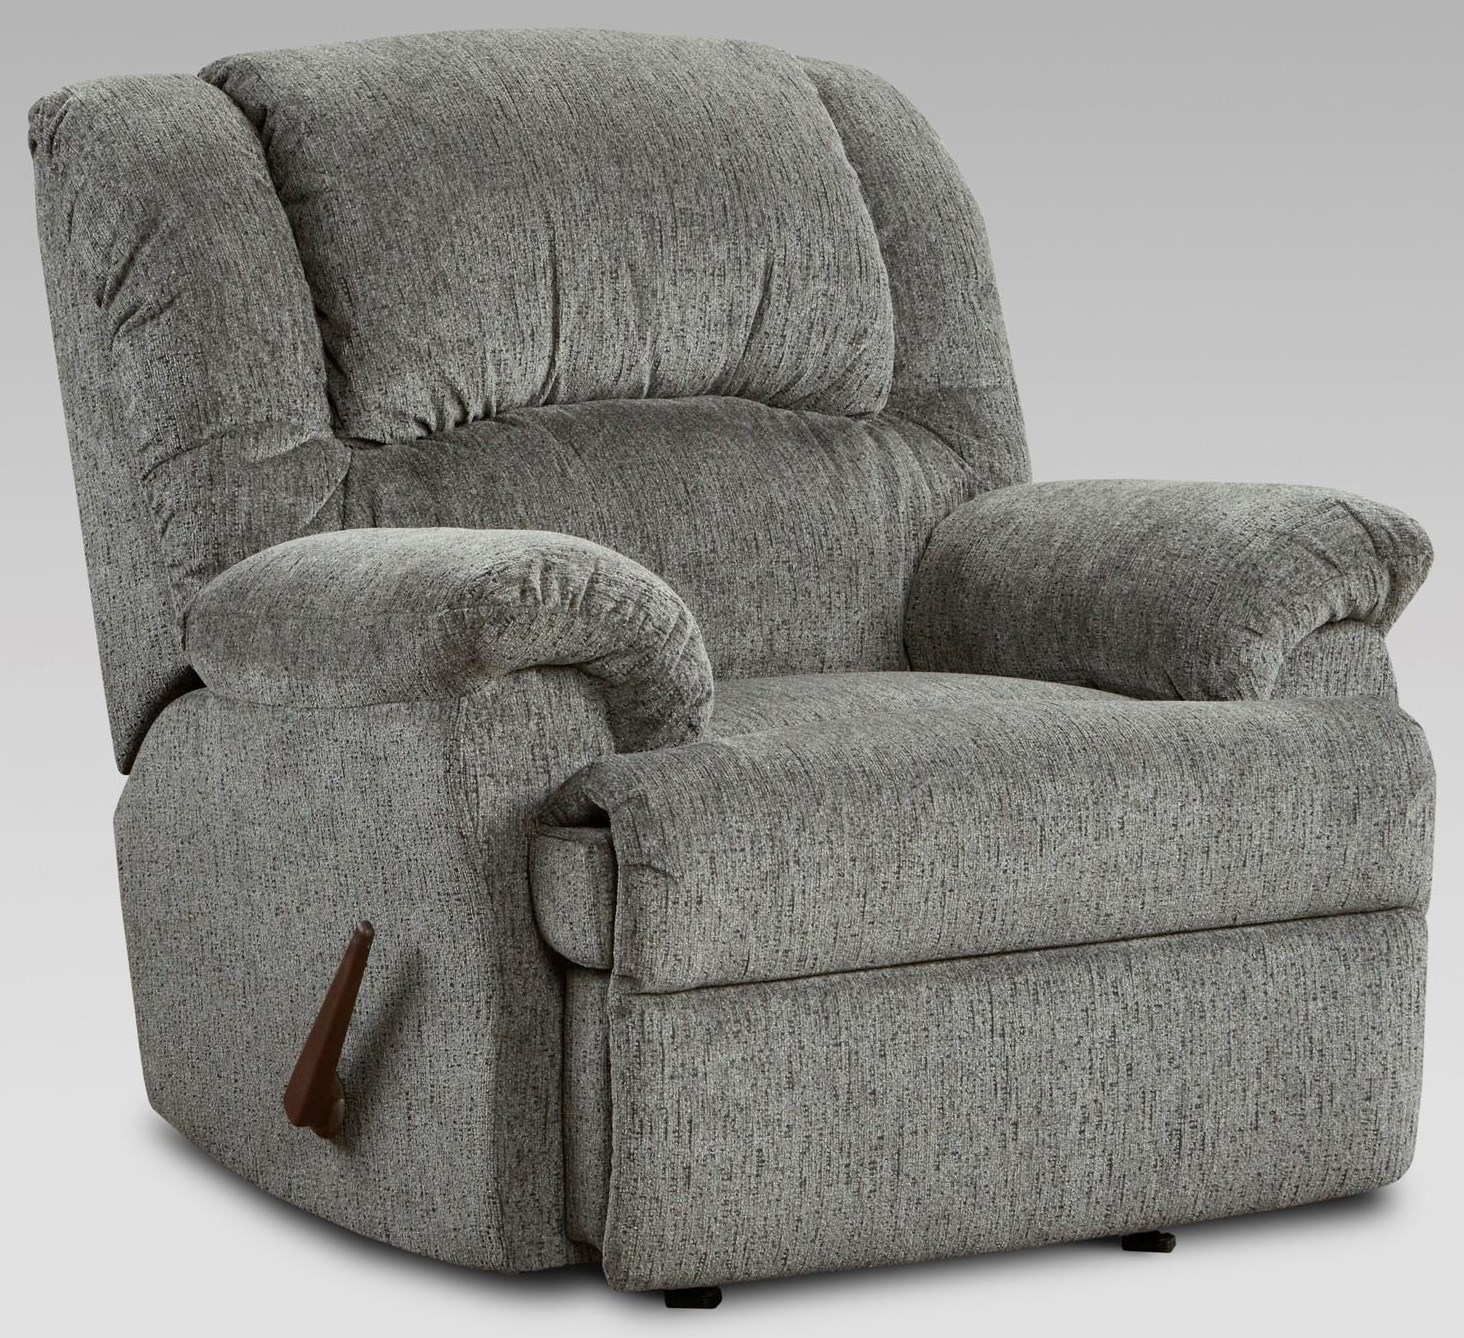 1000 Allure Grey Rocker Recliner by Affordable Furniture at Furniture Fair - North Carolina